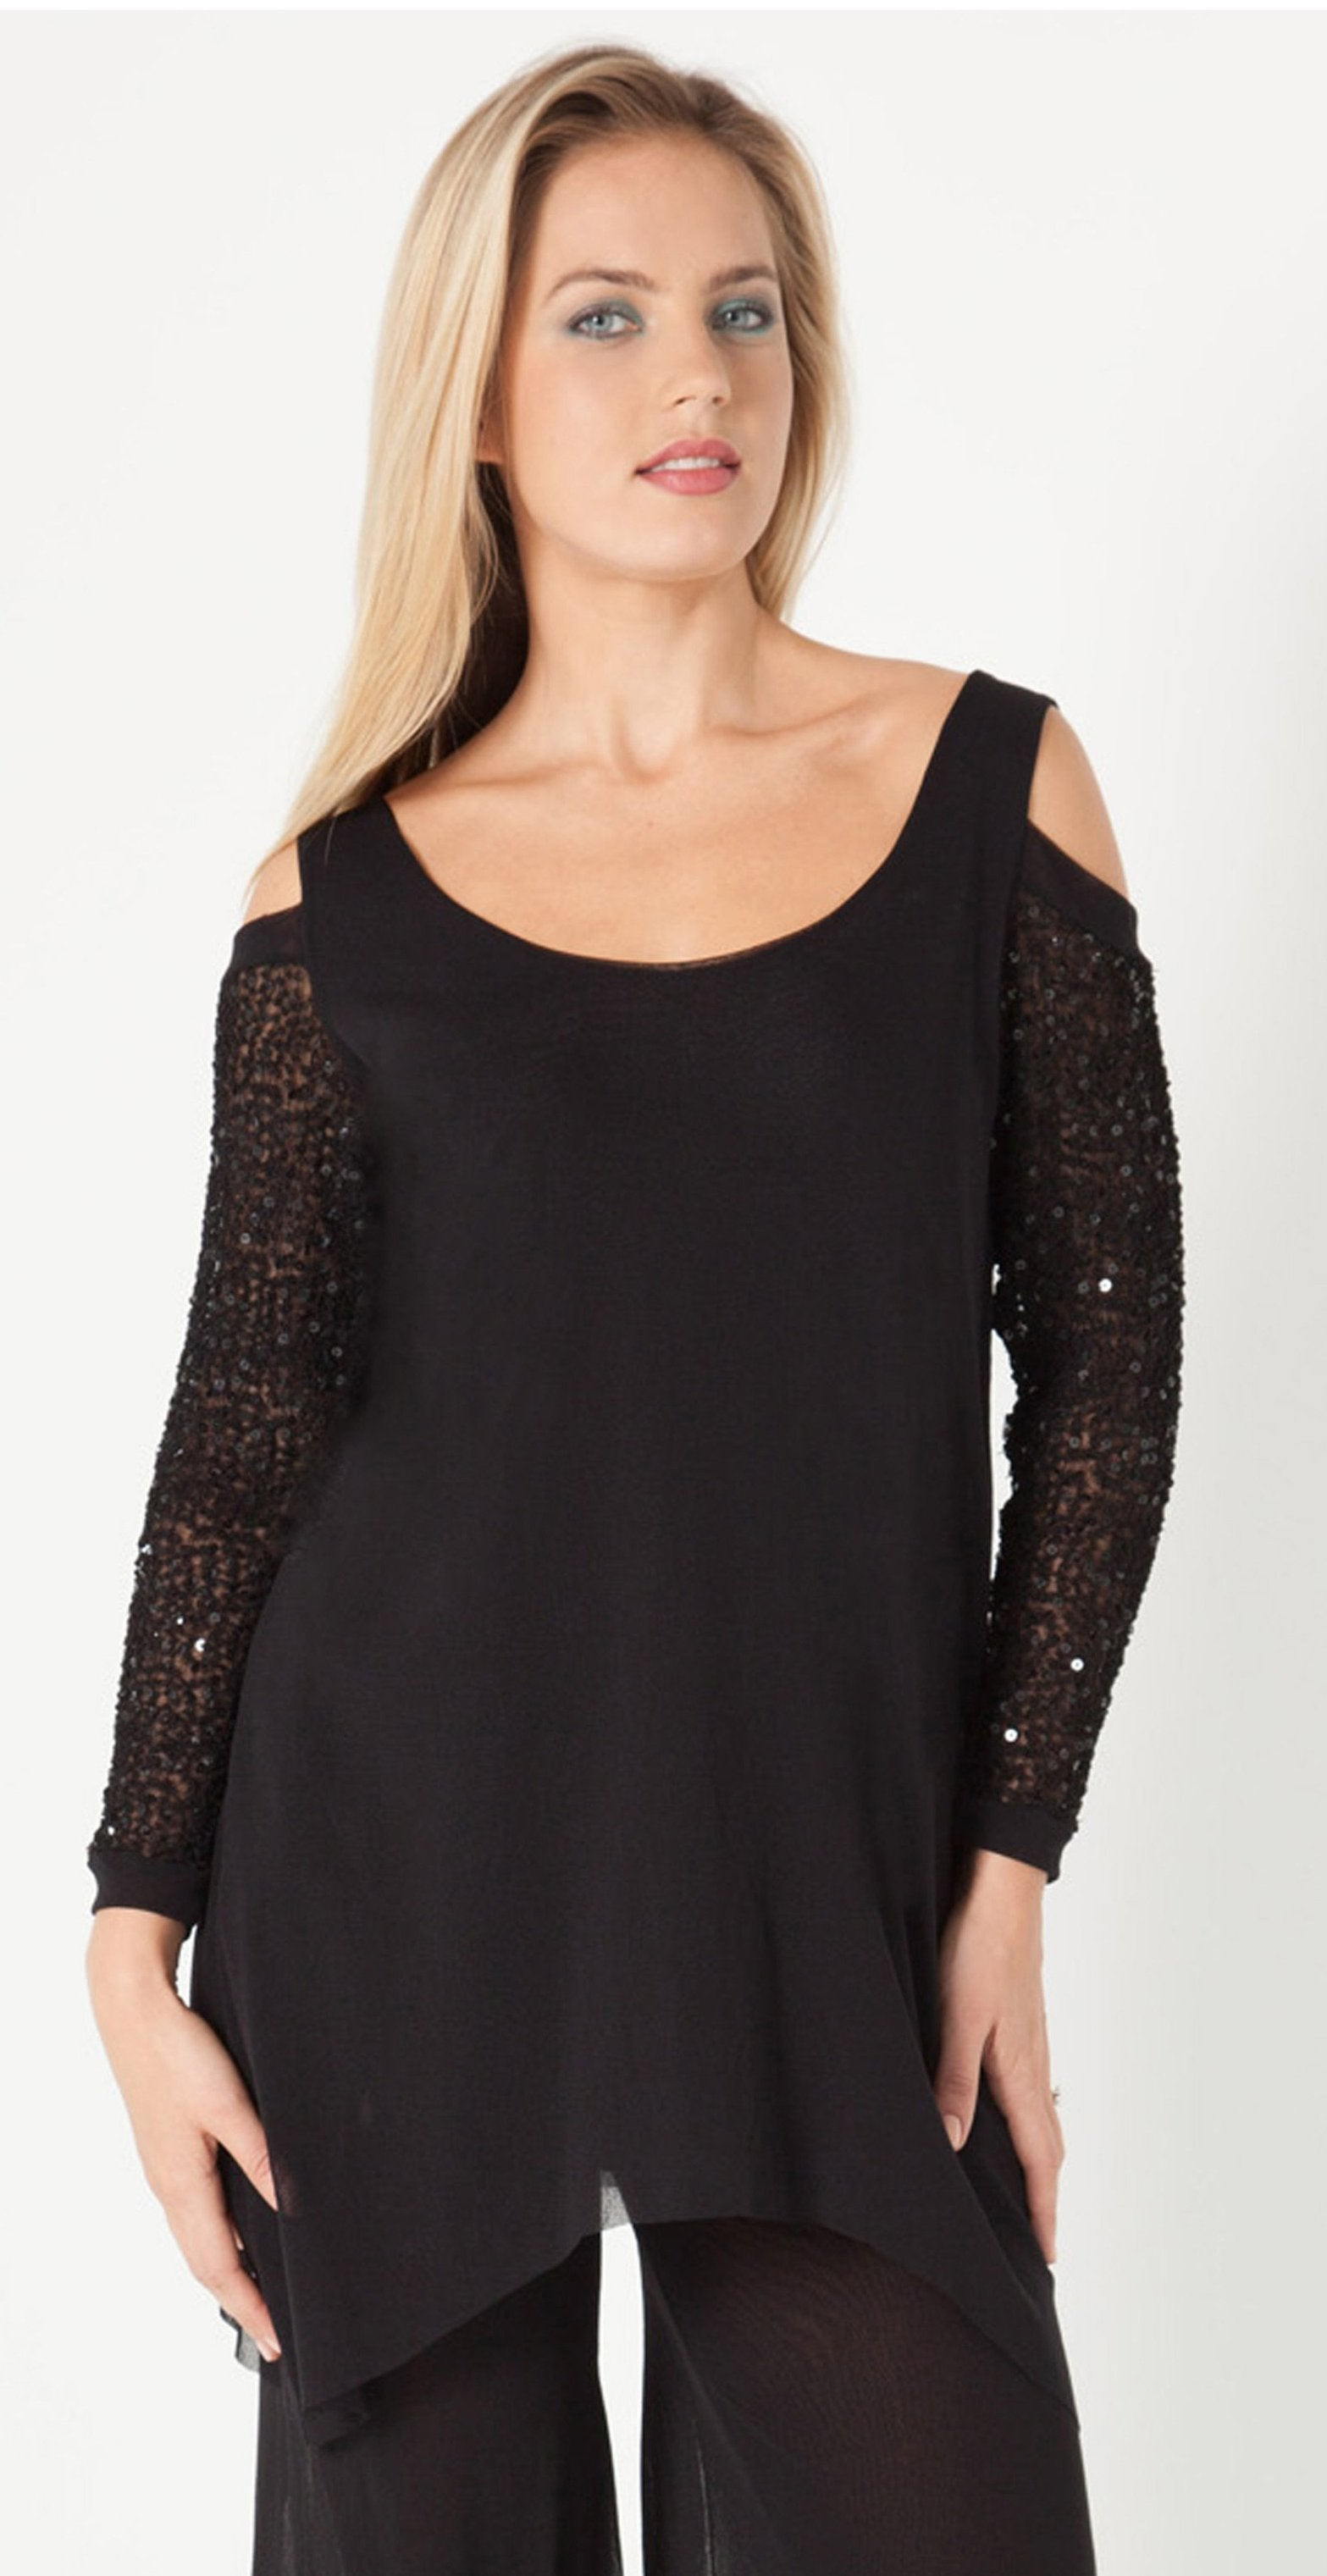 Cold Shoulder Tunic With Sequined Sleeves - MTU32SB - Sara Mique Evening Wear